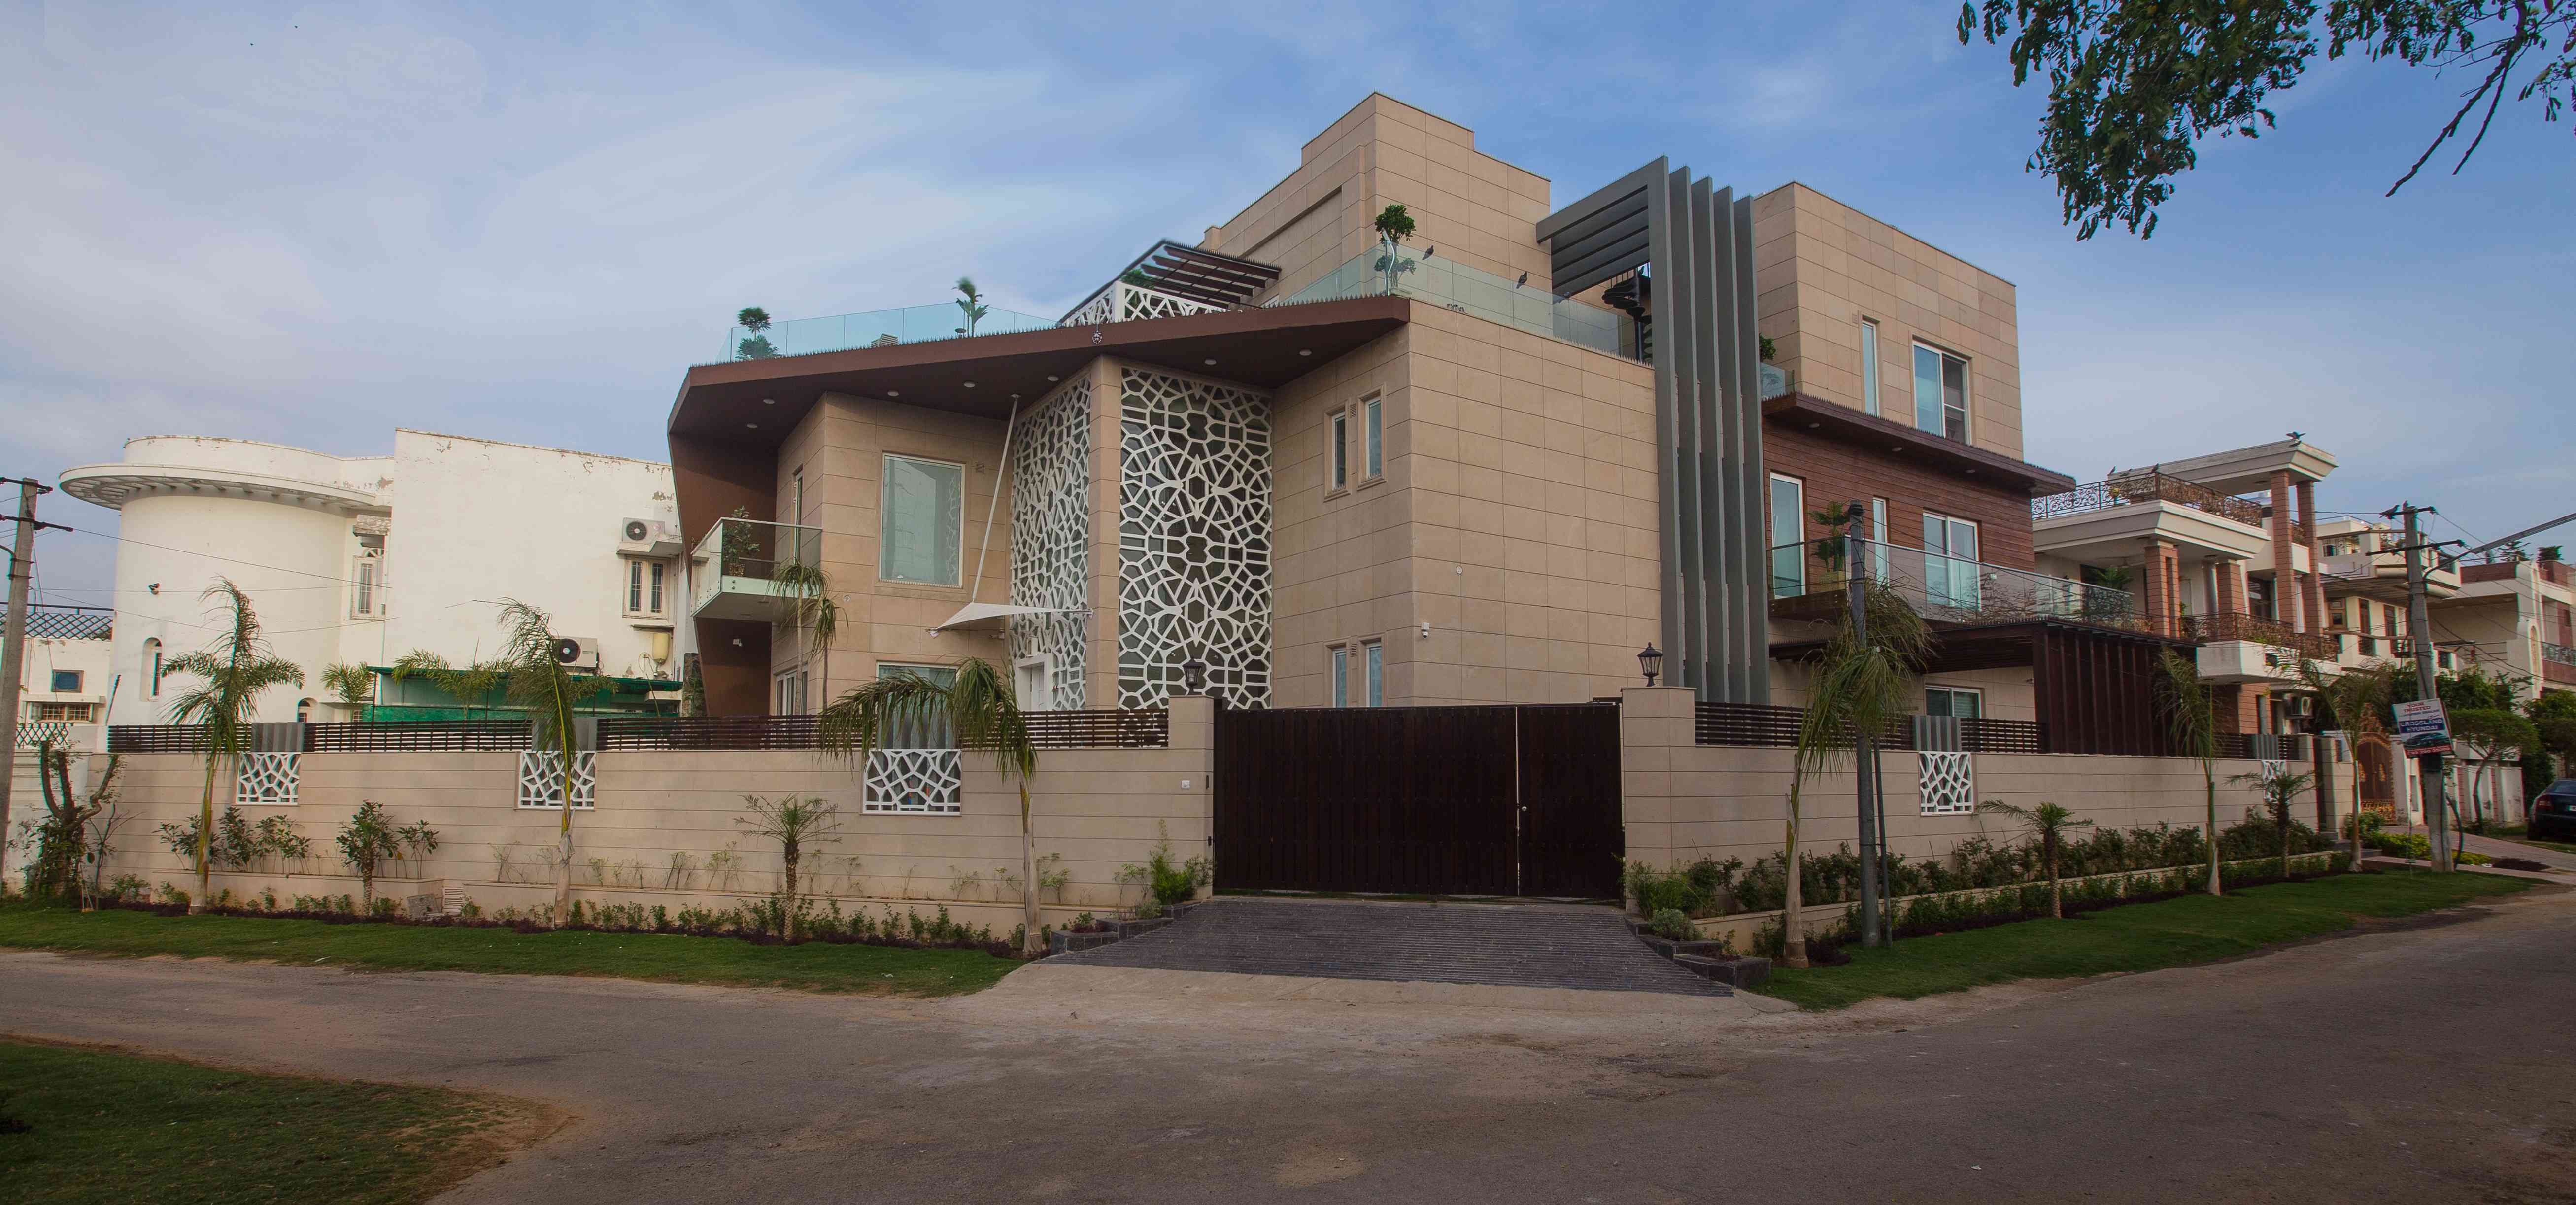 House design jaipur - Click On The Link Below For View More Design Photos Http Www Zingyhomes Com Project Detail Manool Chaudhary_28849 Jaipur Bunglow